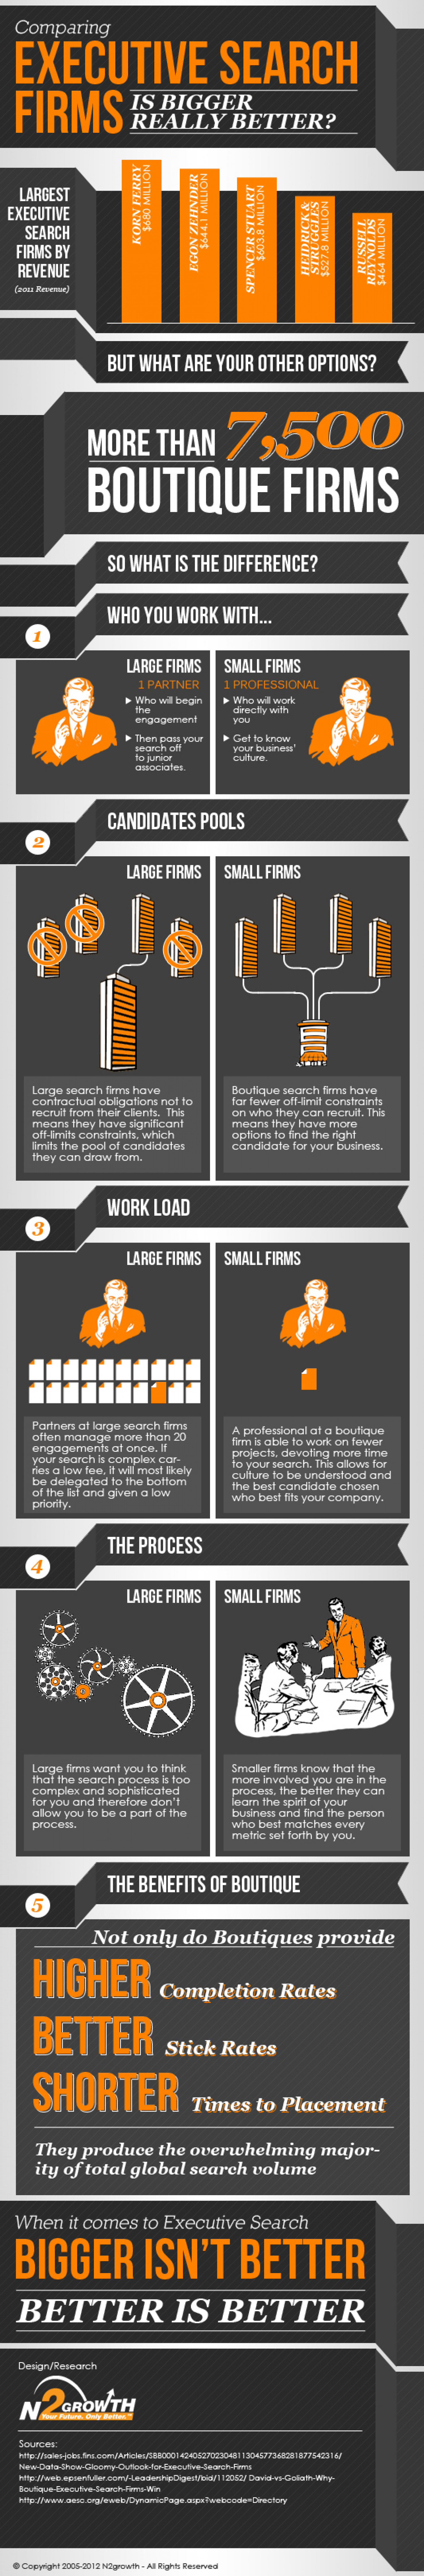 How to Choose an Executive Search Firm Infographic